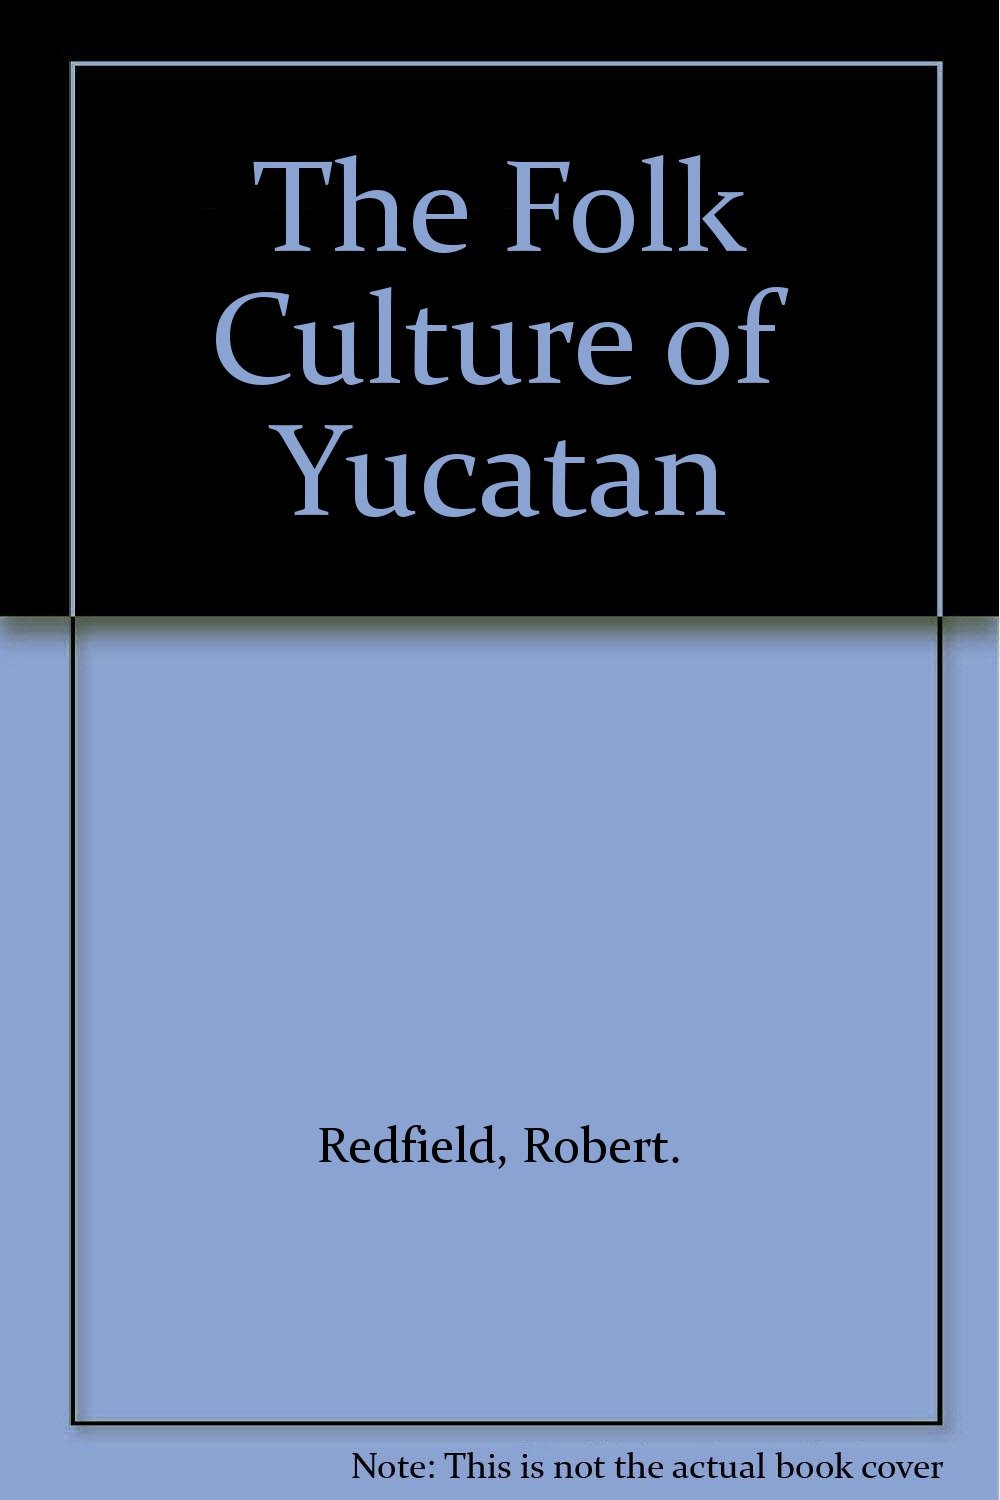 The folk culture of Yucatan, (The University of Chicago publications in anthropology. Social anthropology series)